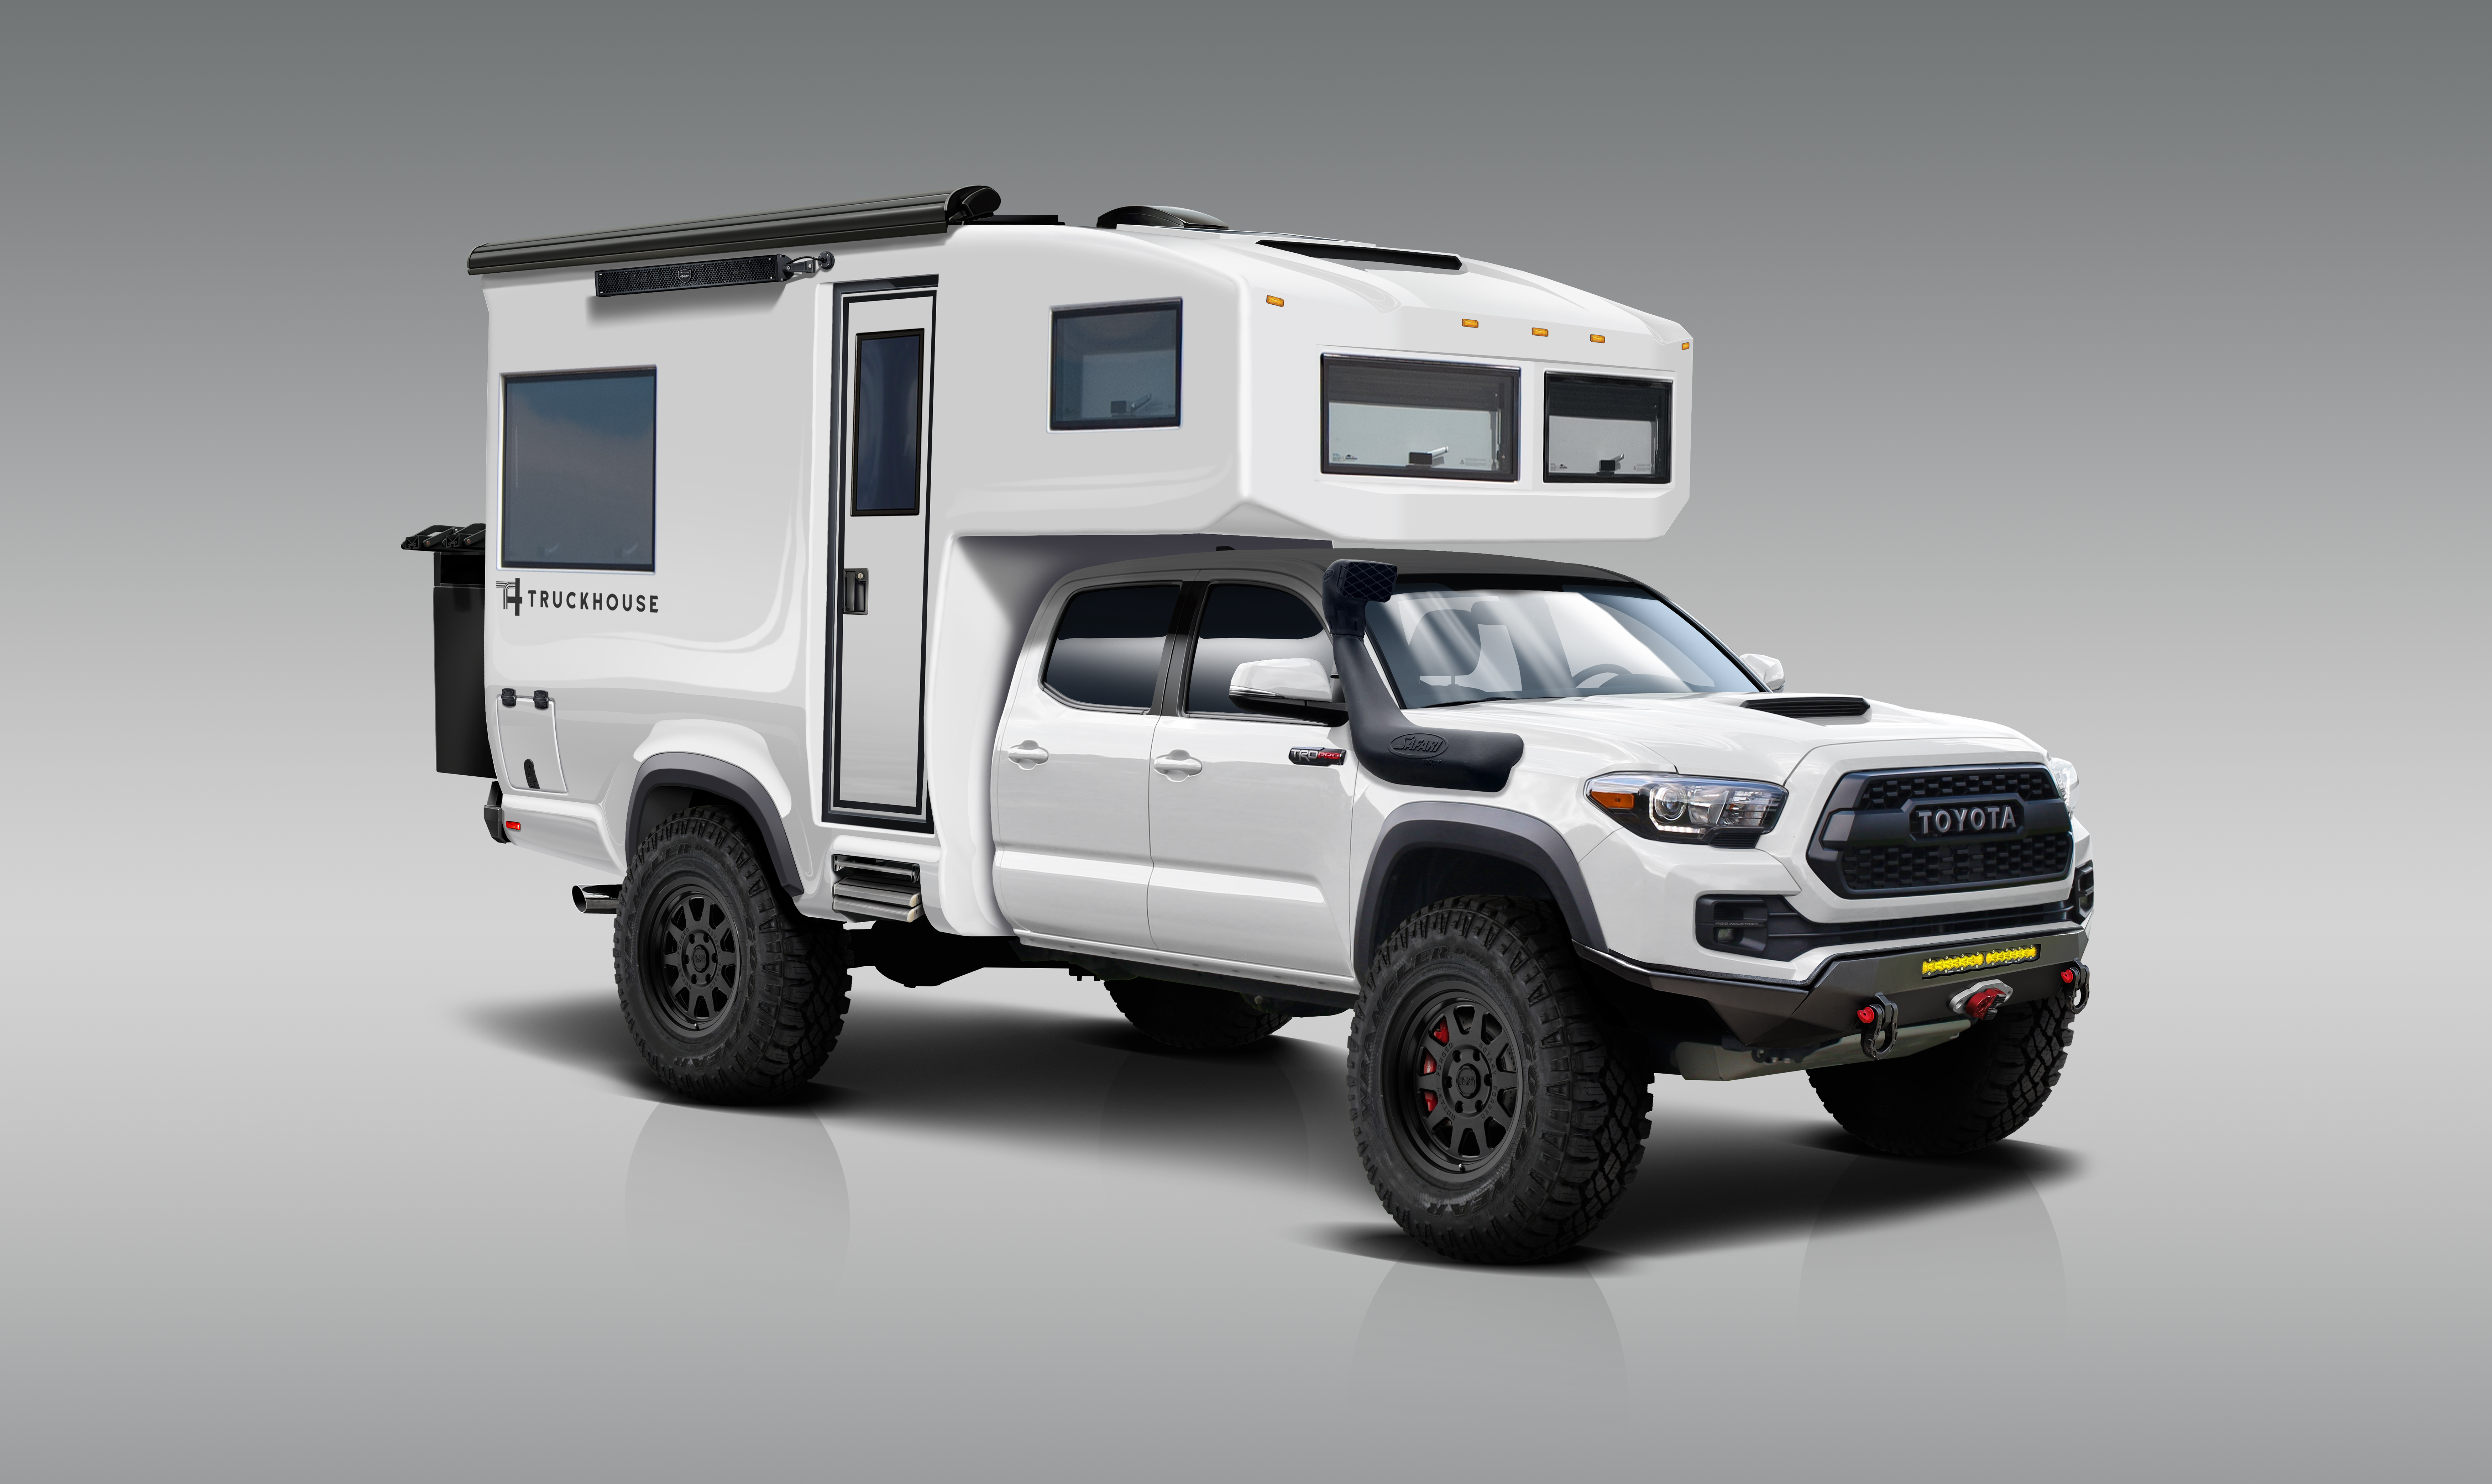 TruckHouse keeps things light but comfortable with a single-piece carbon-reinforced composite camper module